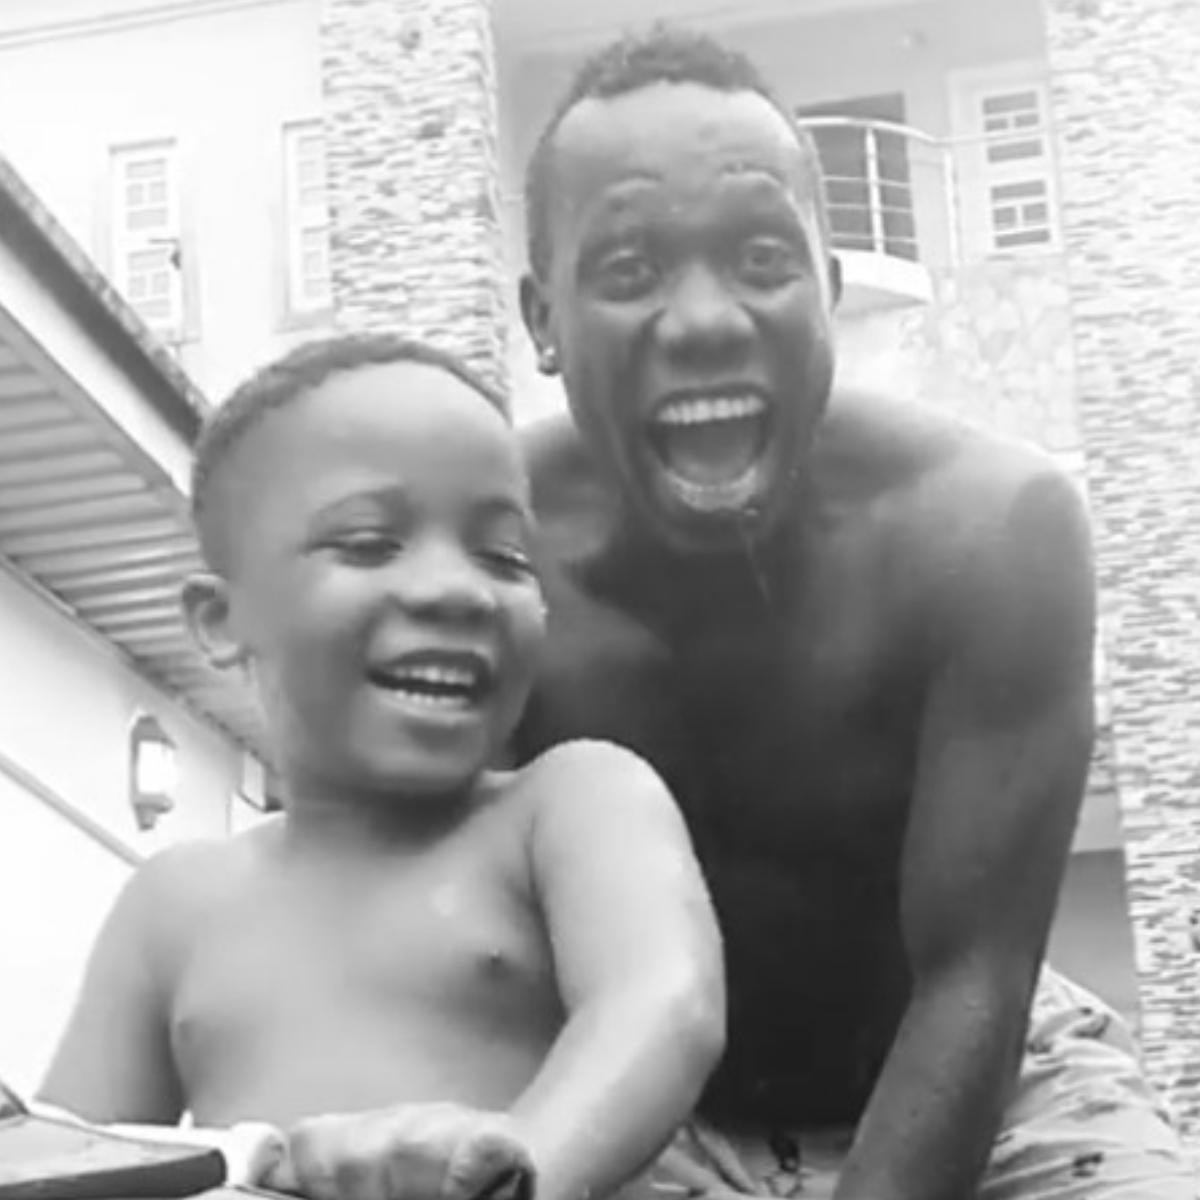 Duncan Mighty Play Football In Rain Swim In The Gutter